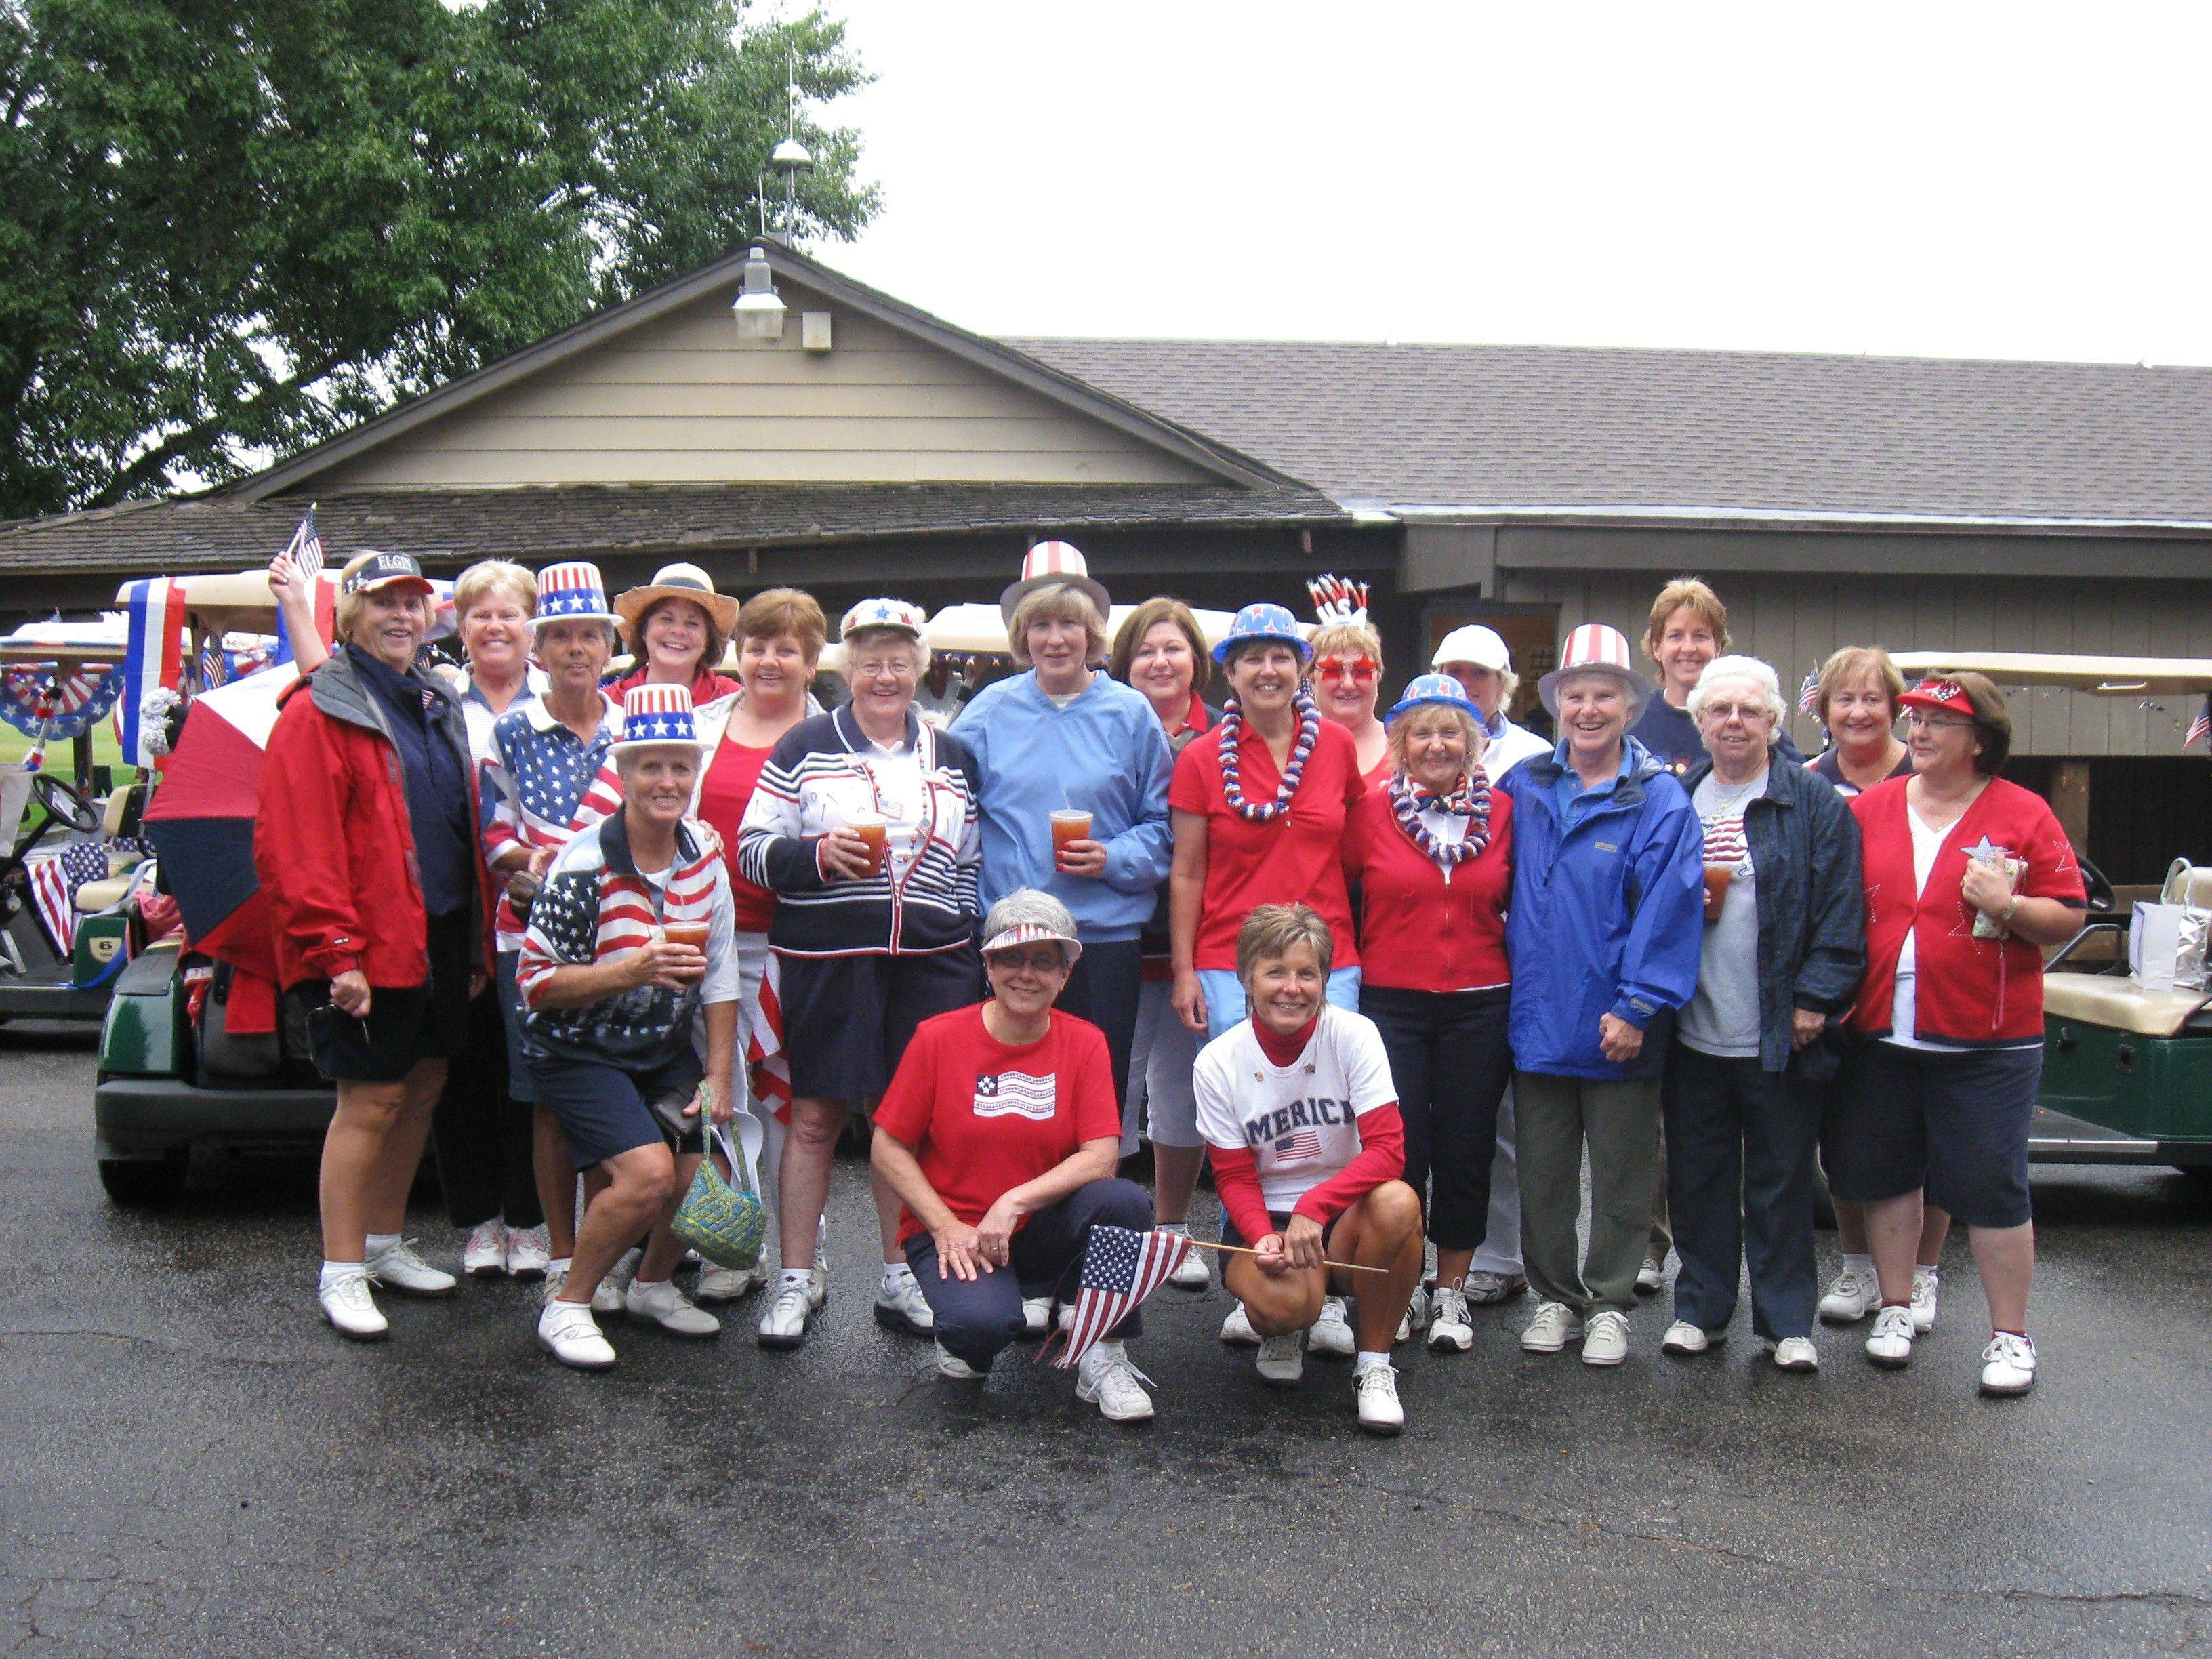 Elgin Golferettes celebrate at the end of the 2010 season. The women held a 60th anniversary celebration in September.